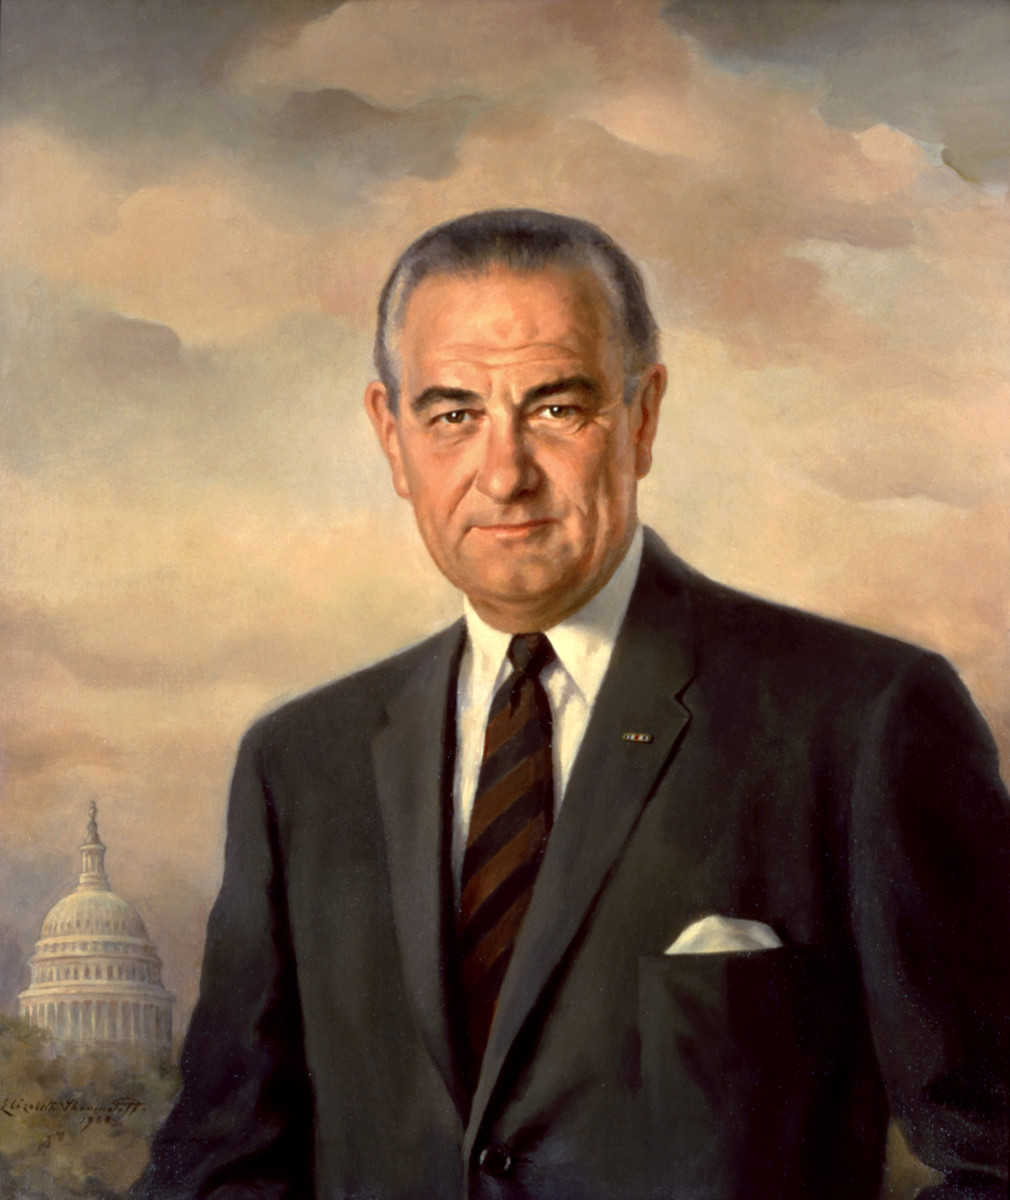 president lyndon b johnson and the vietnam Lyndon baines johnson (august 27, 1908 - january 22, 1973) was a member of the democratic party and the 36th president of the united states serving from 1963 to 1969 johnson took over as president when president kennedy was killed in november 1963.